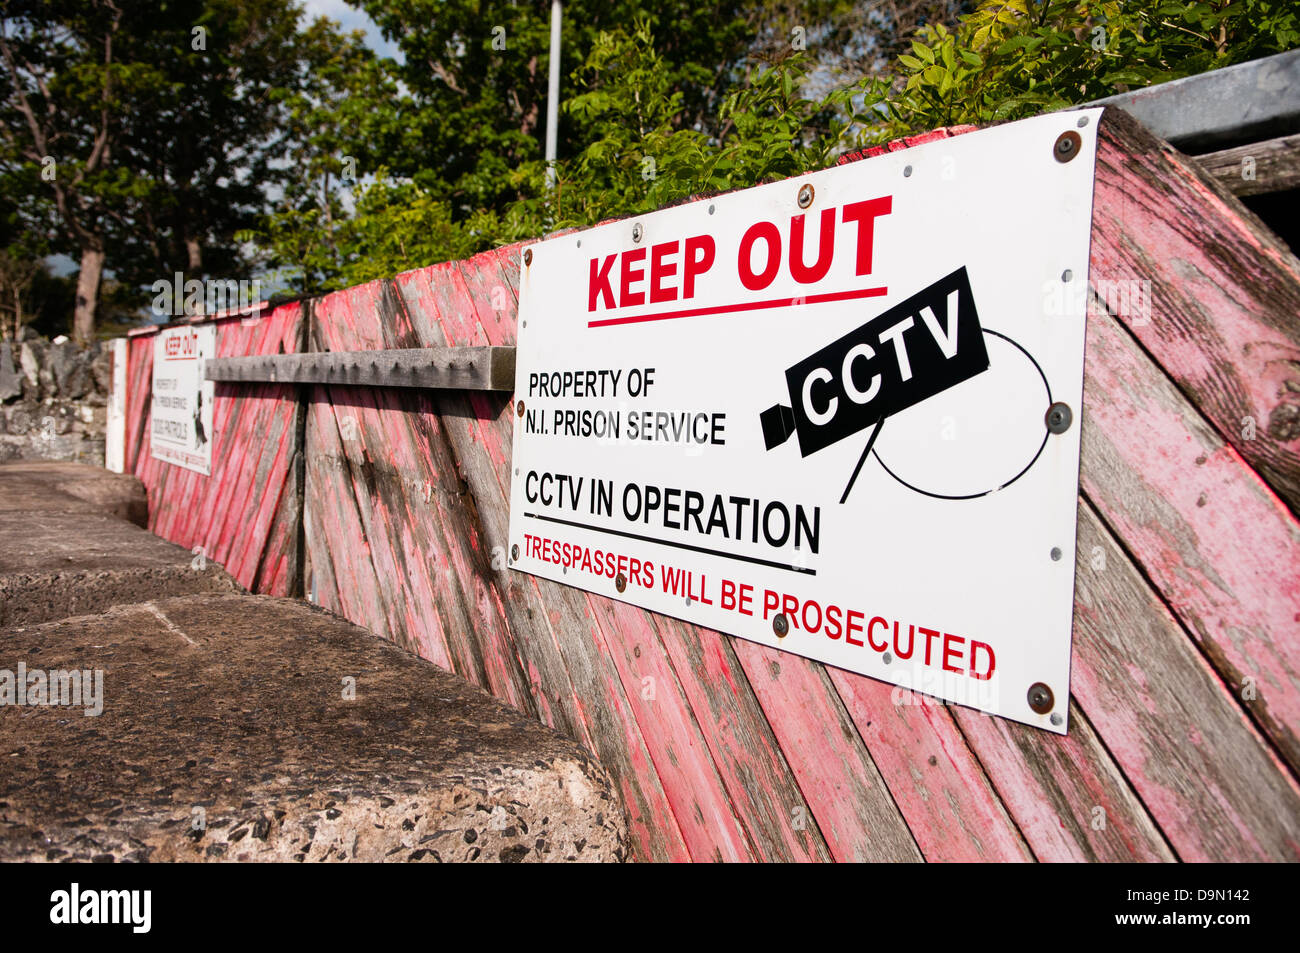 Sign at the entrance to a Northern Ireland Prison Service property, warning trespassers to keep out - Stock Image